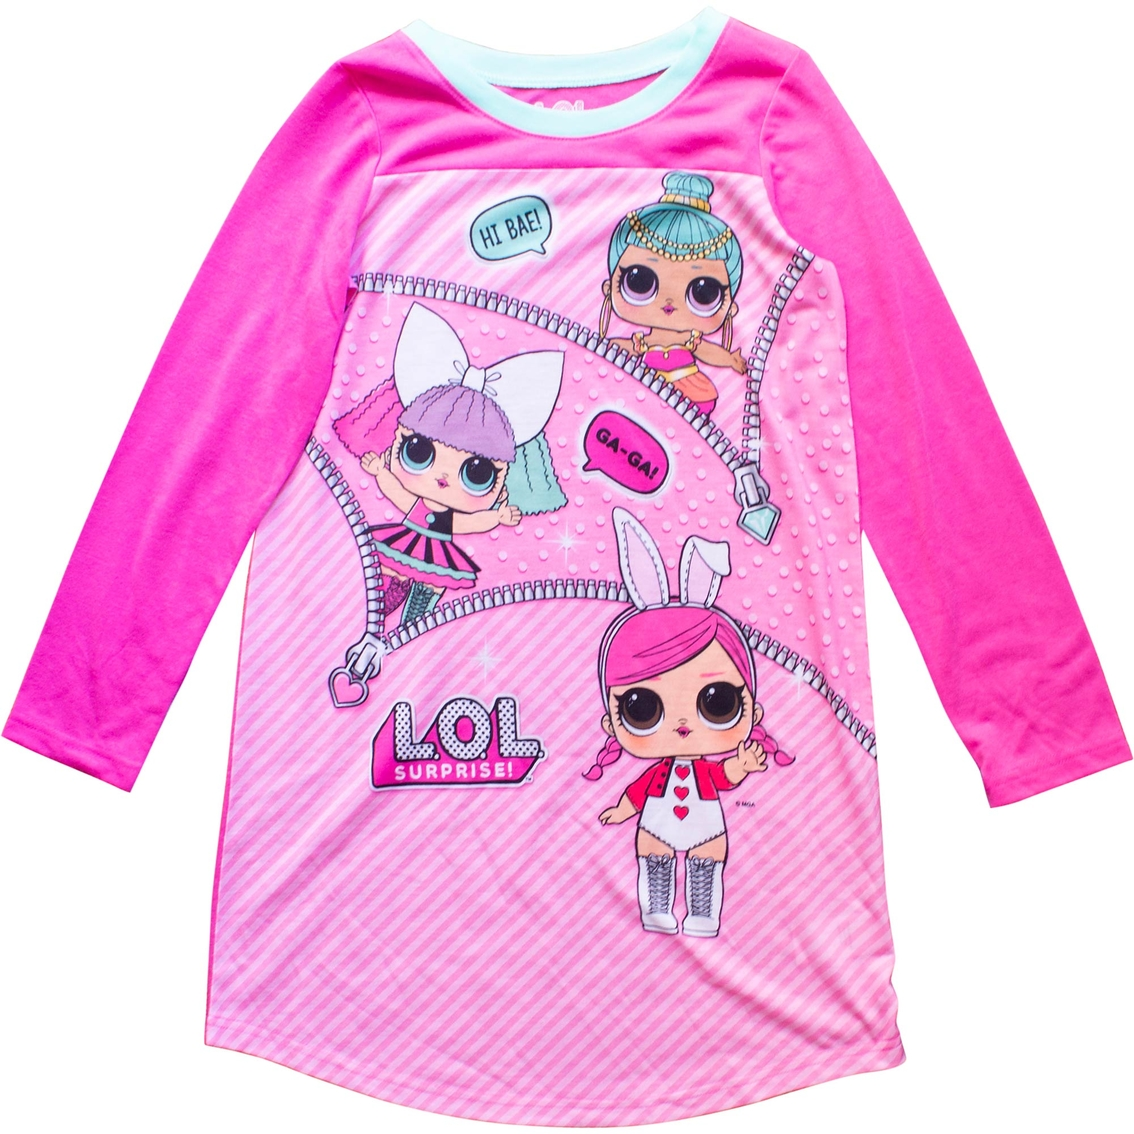 jersey sports dress LOL Surprise doll accessories outfits clothes